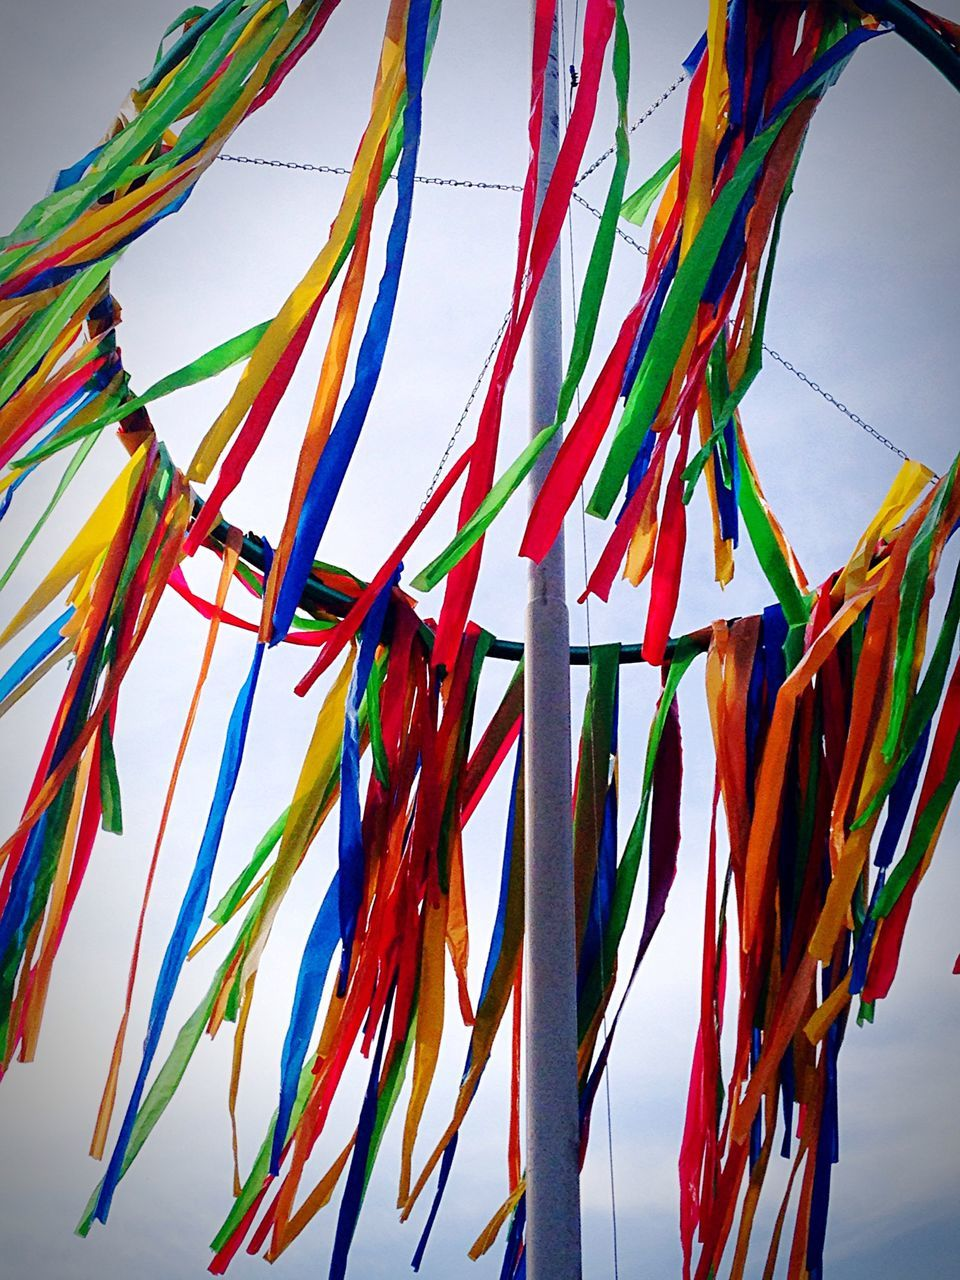 Low Angle View Of Multi Colored Ribbons Hanging On Metal